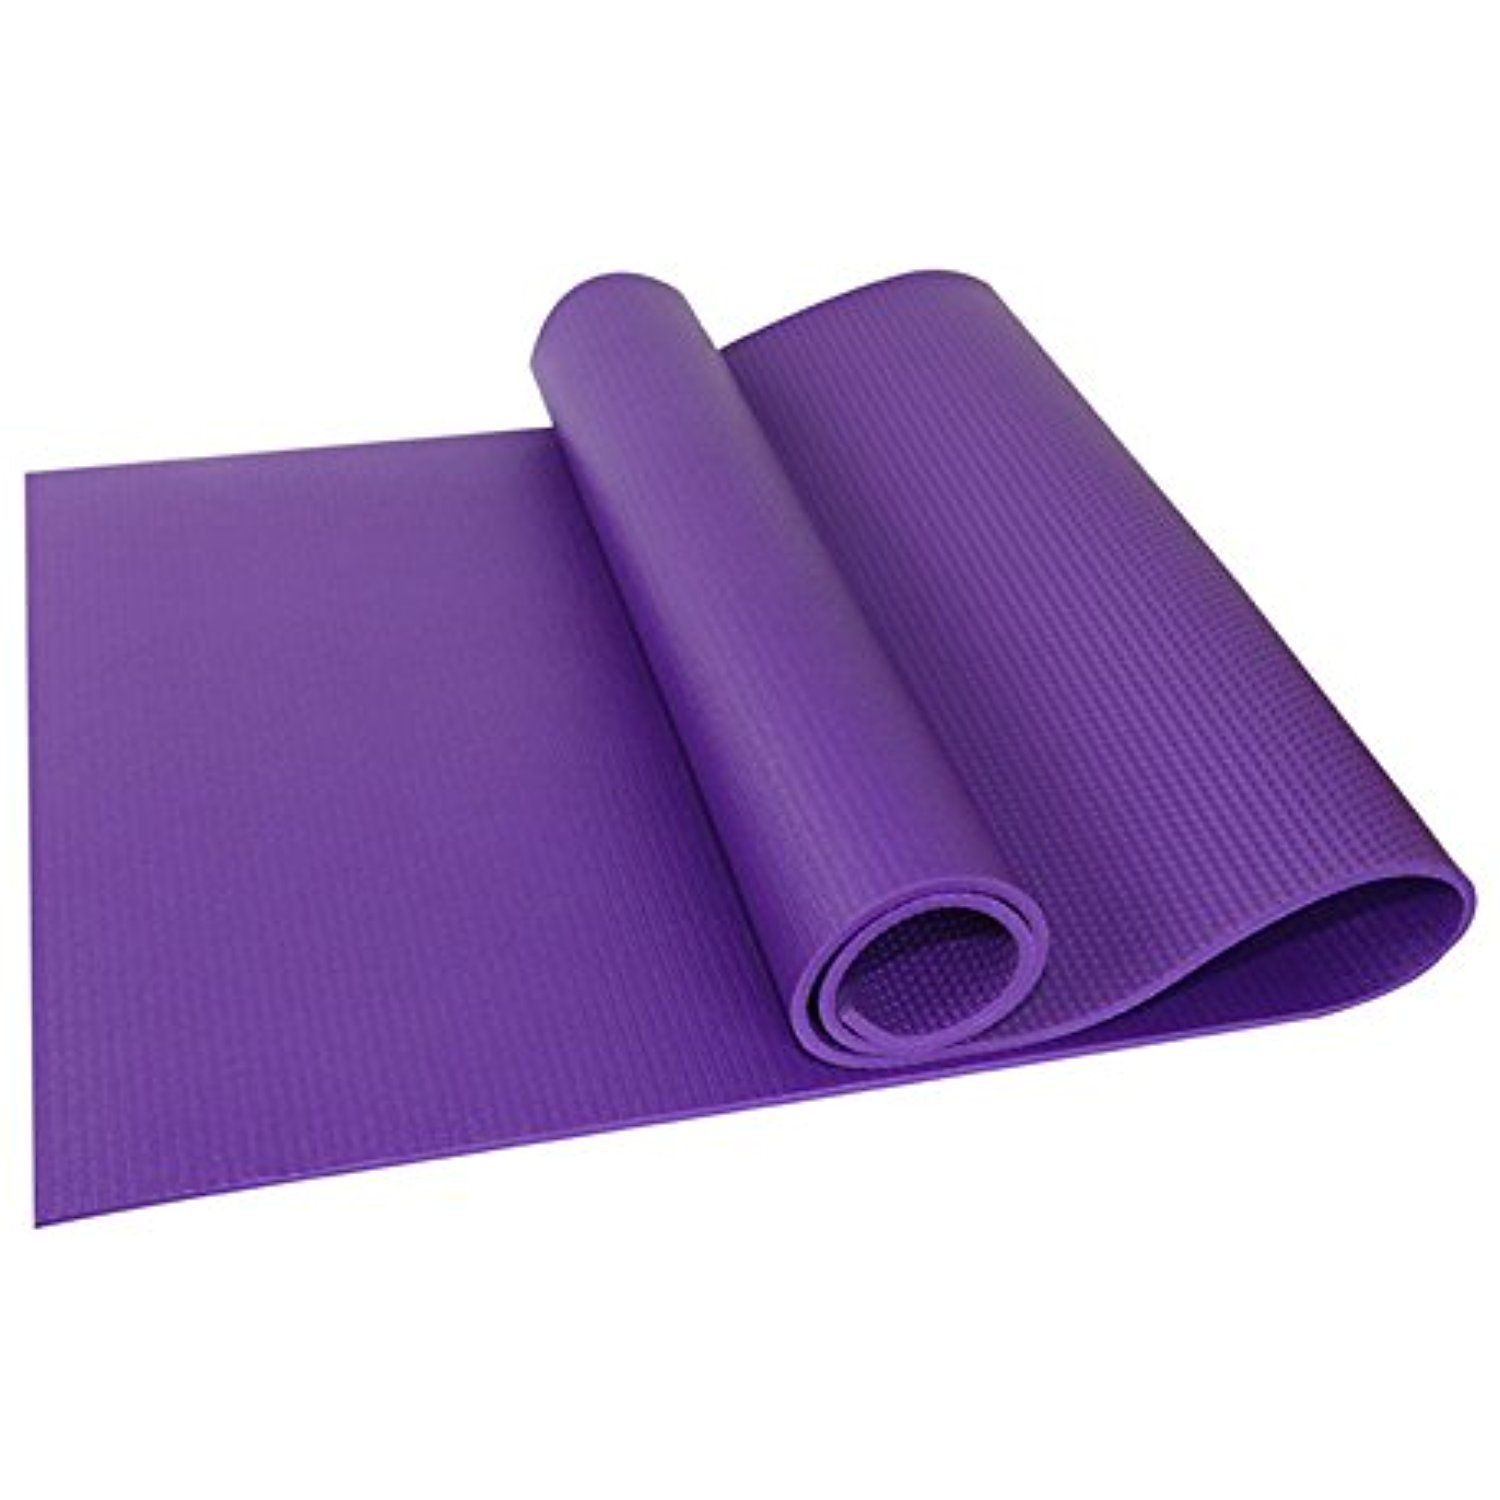 from pilates workout colour fitness physio non work mat pink slip yoga light out product com exercise dhgate ranshu mats thick